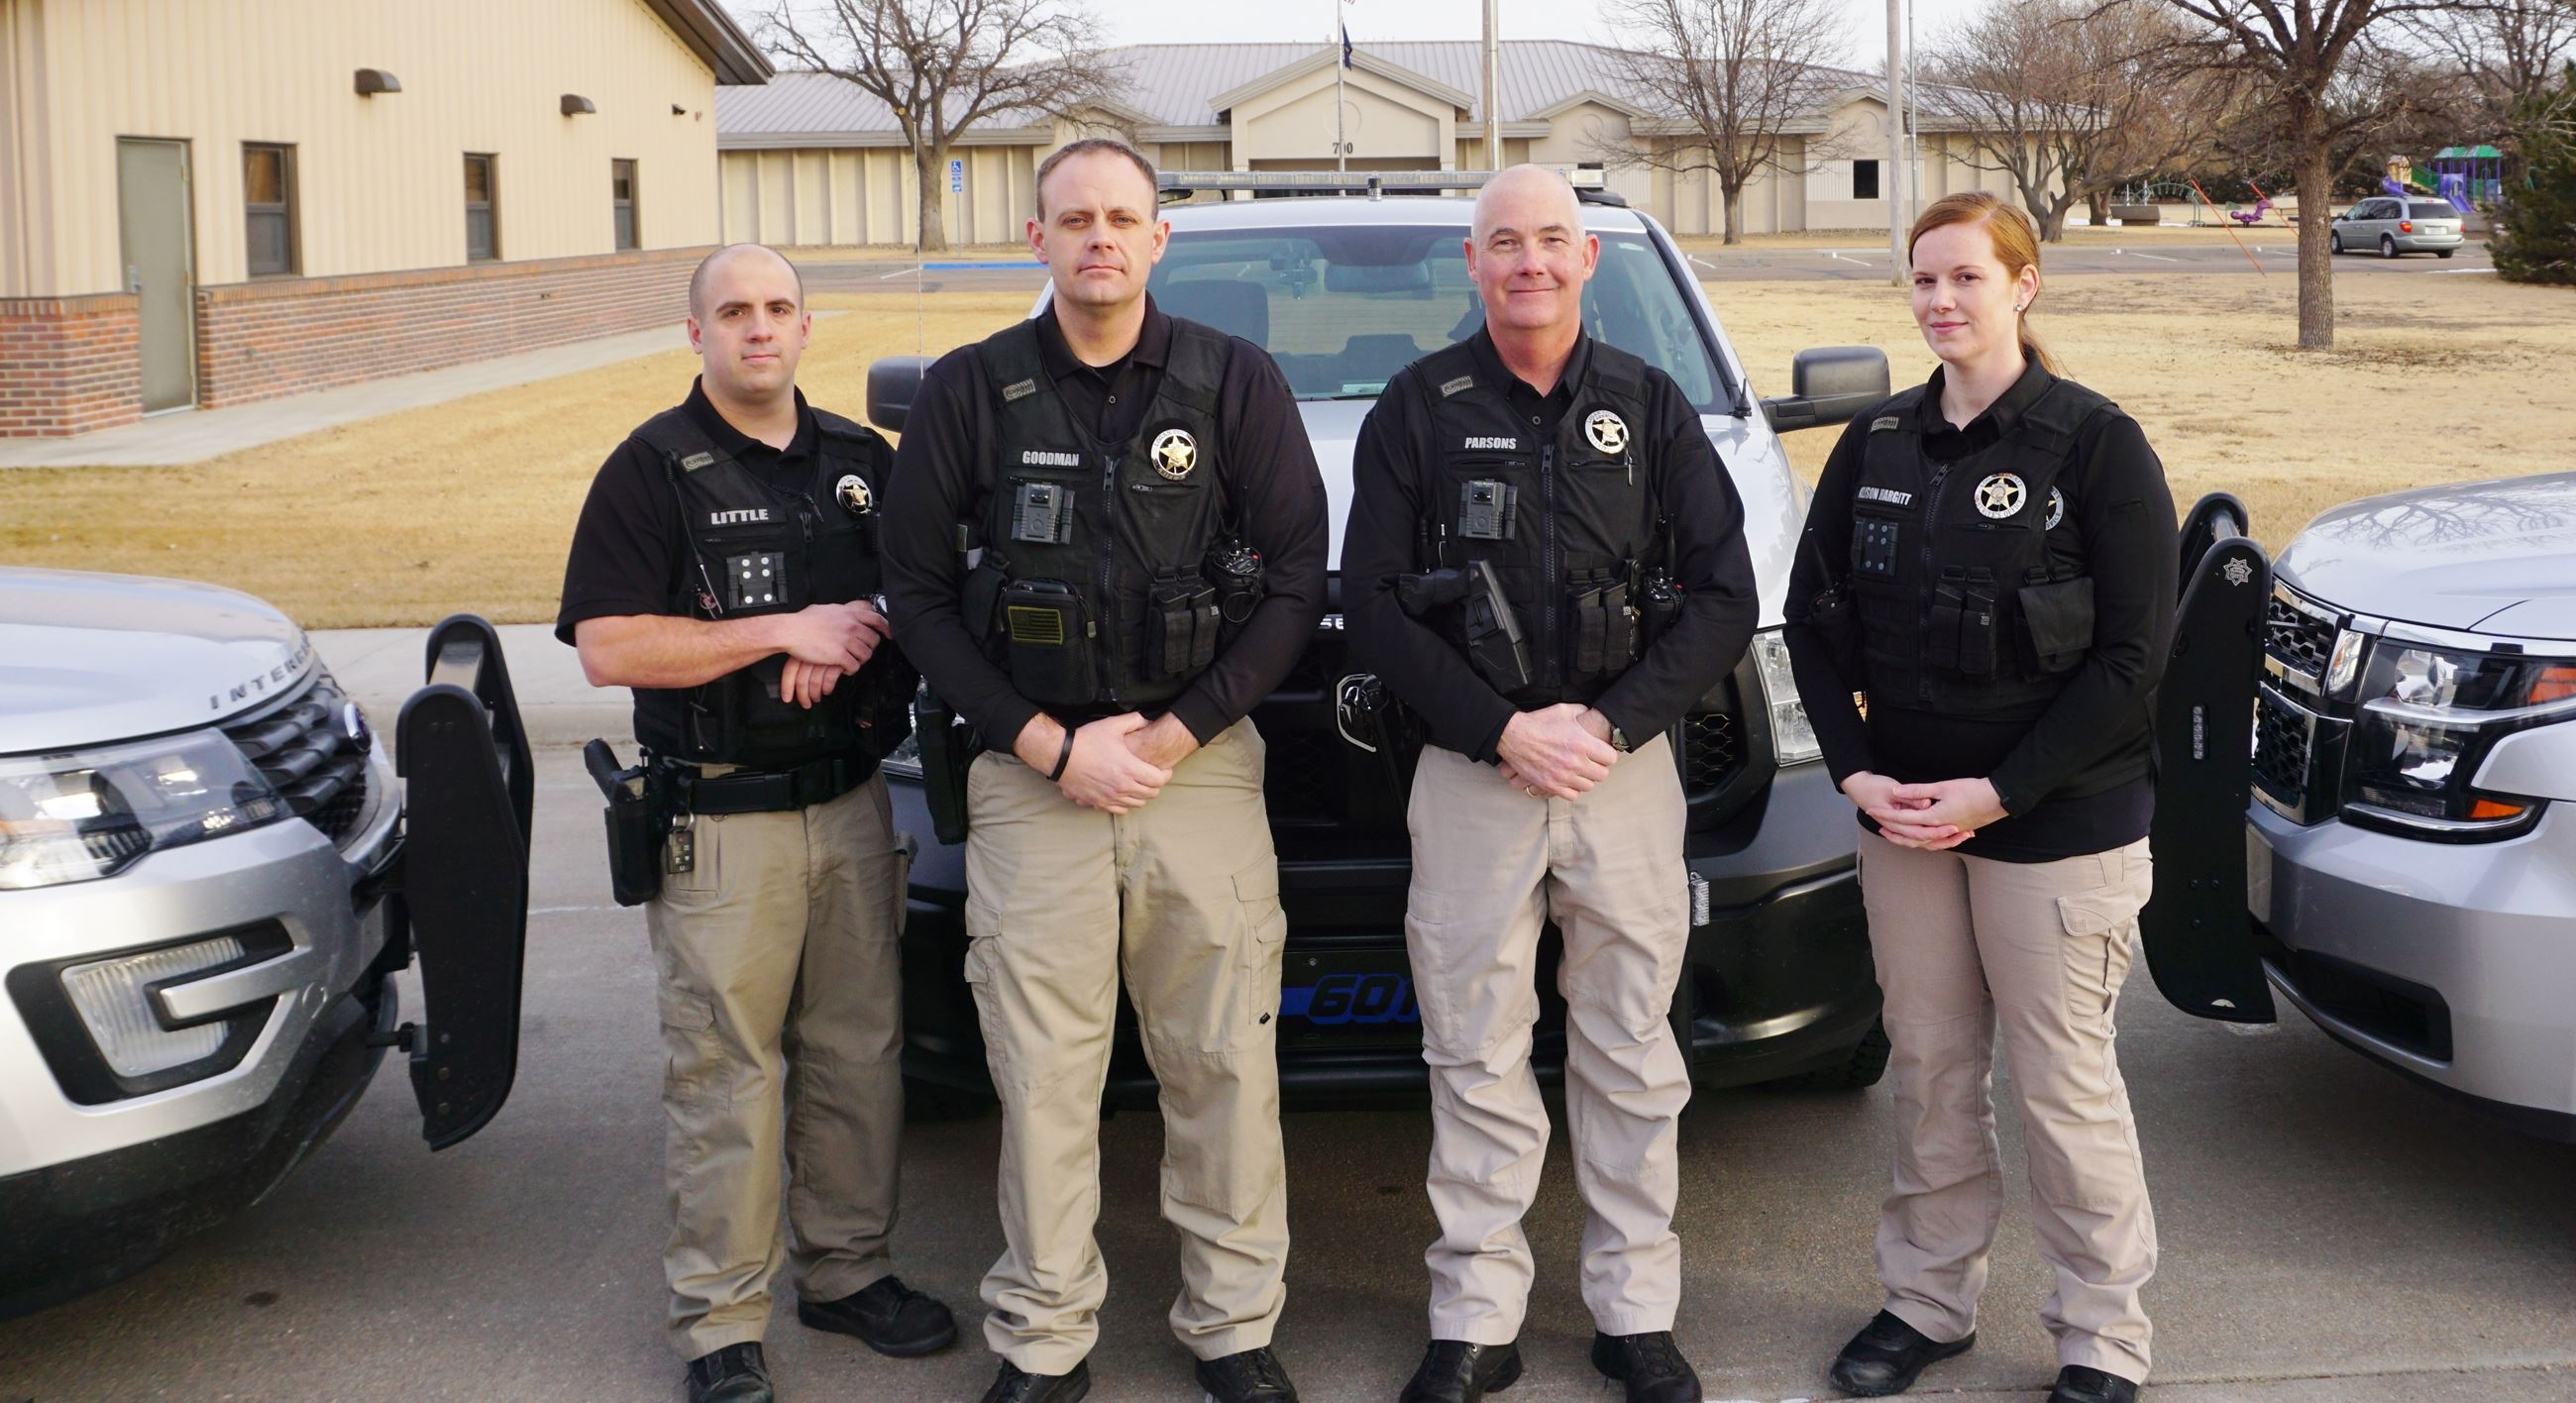 Sheriff officers